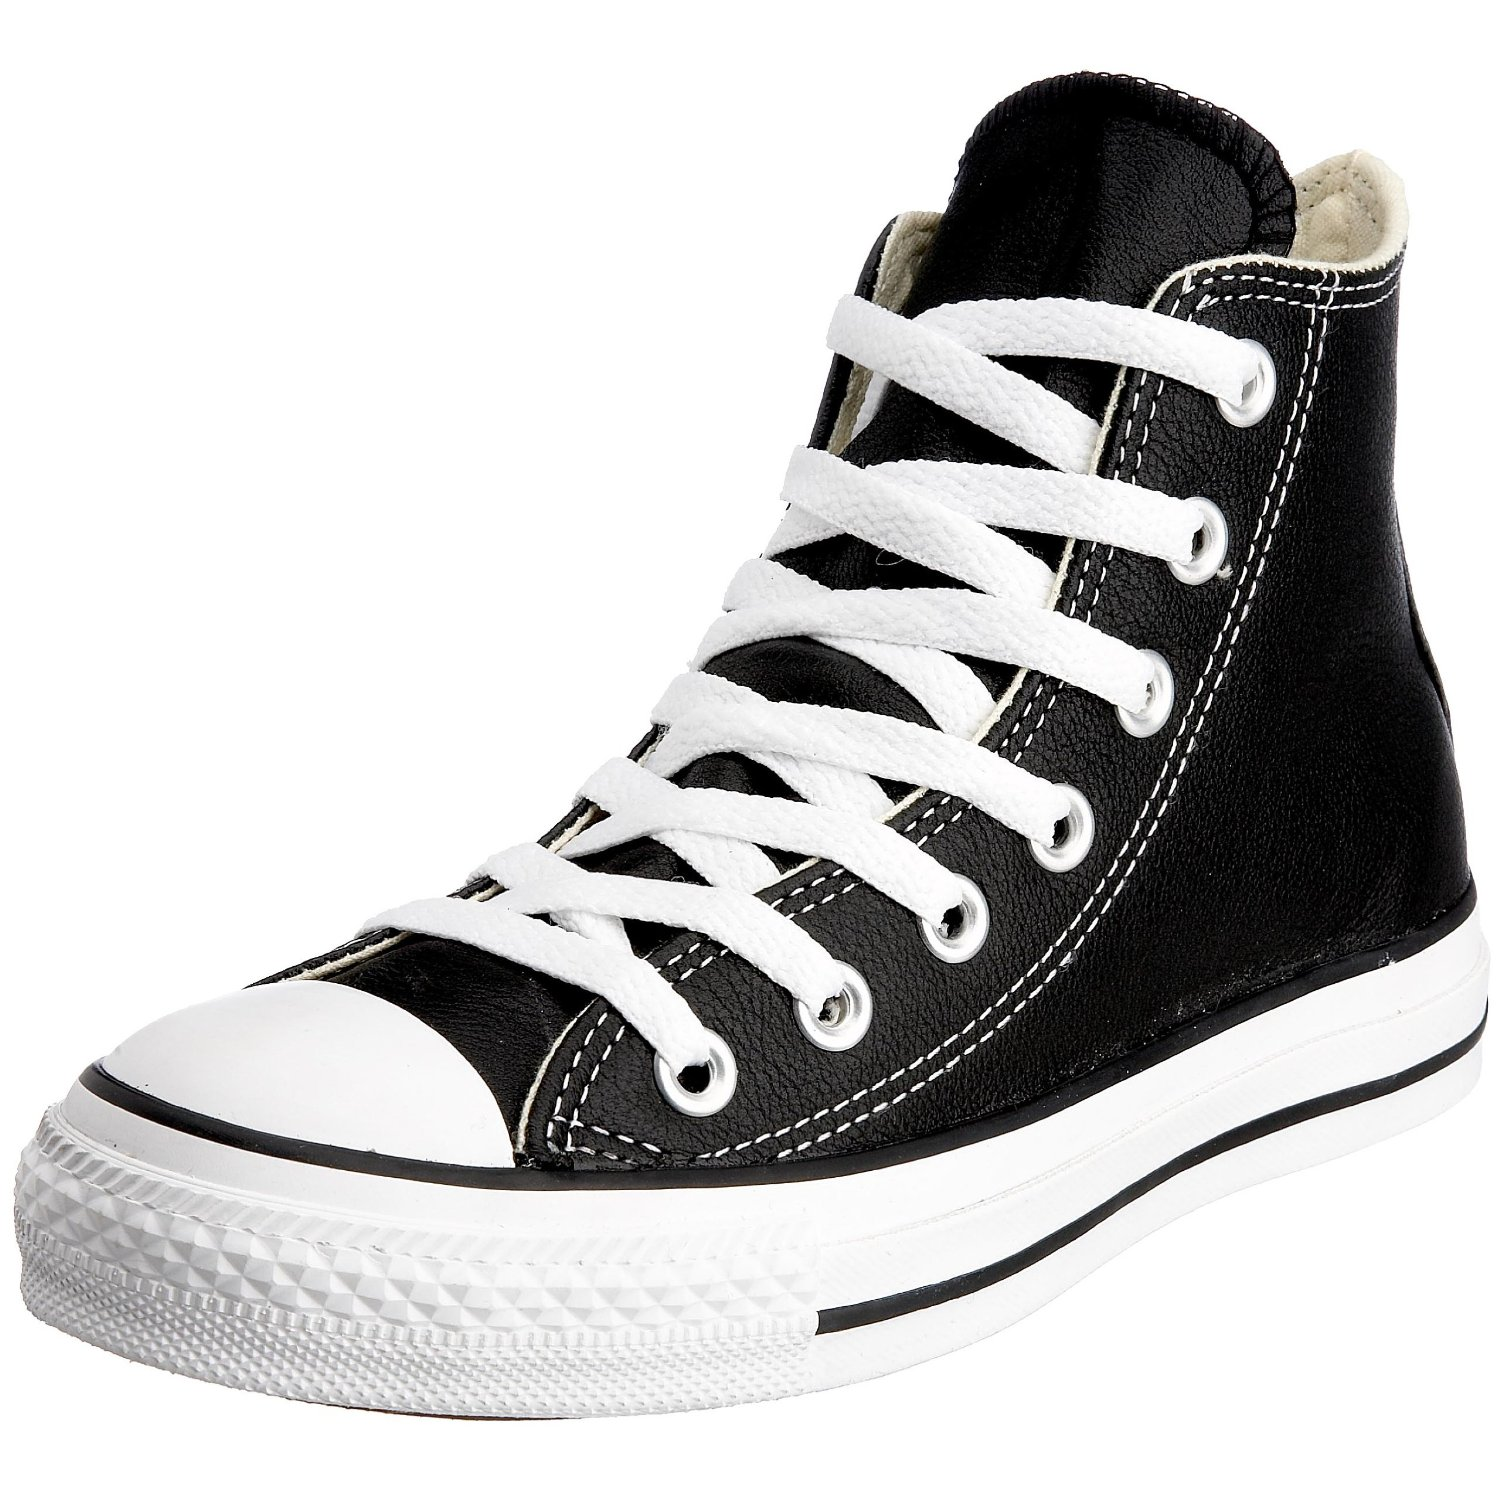 50c7c718d755 Leather Converse All Star Shoes - Chuck Taylors Converse Leather ...